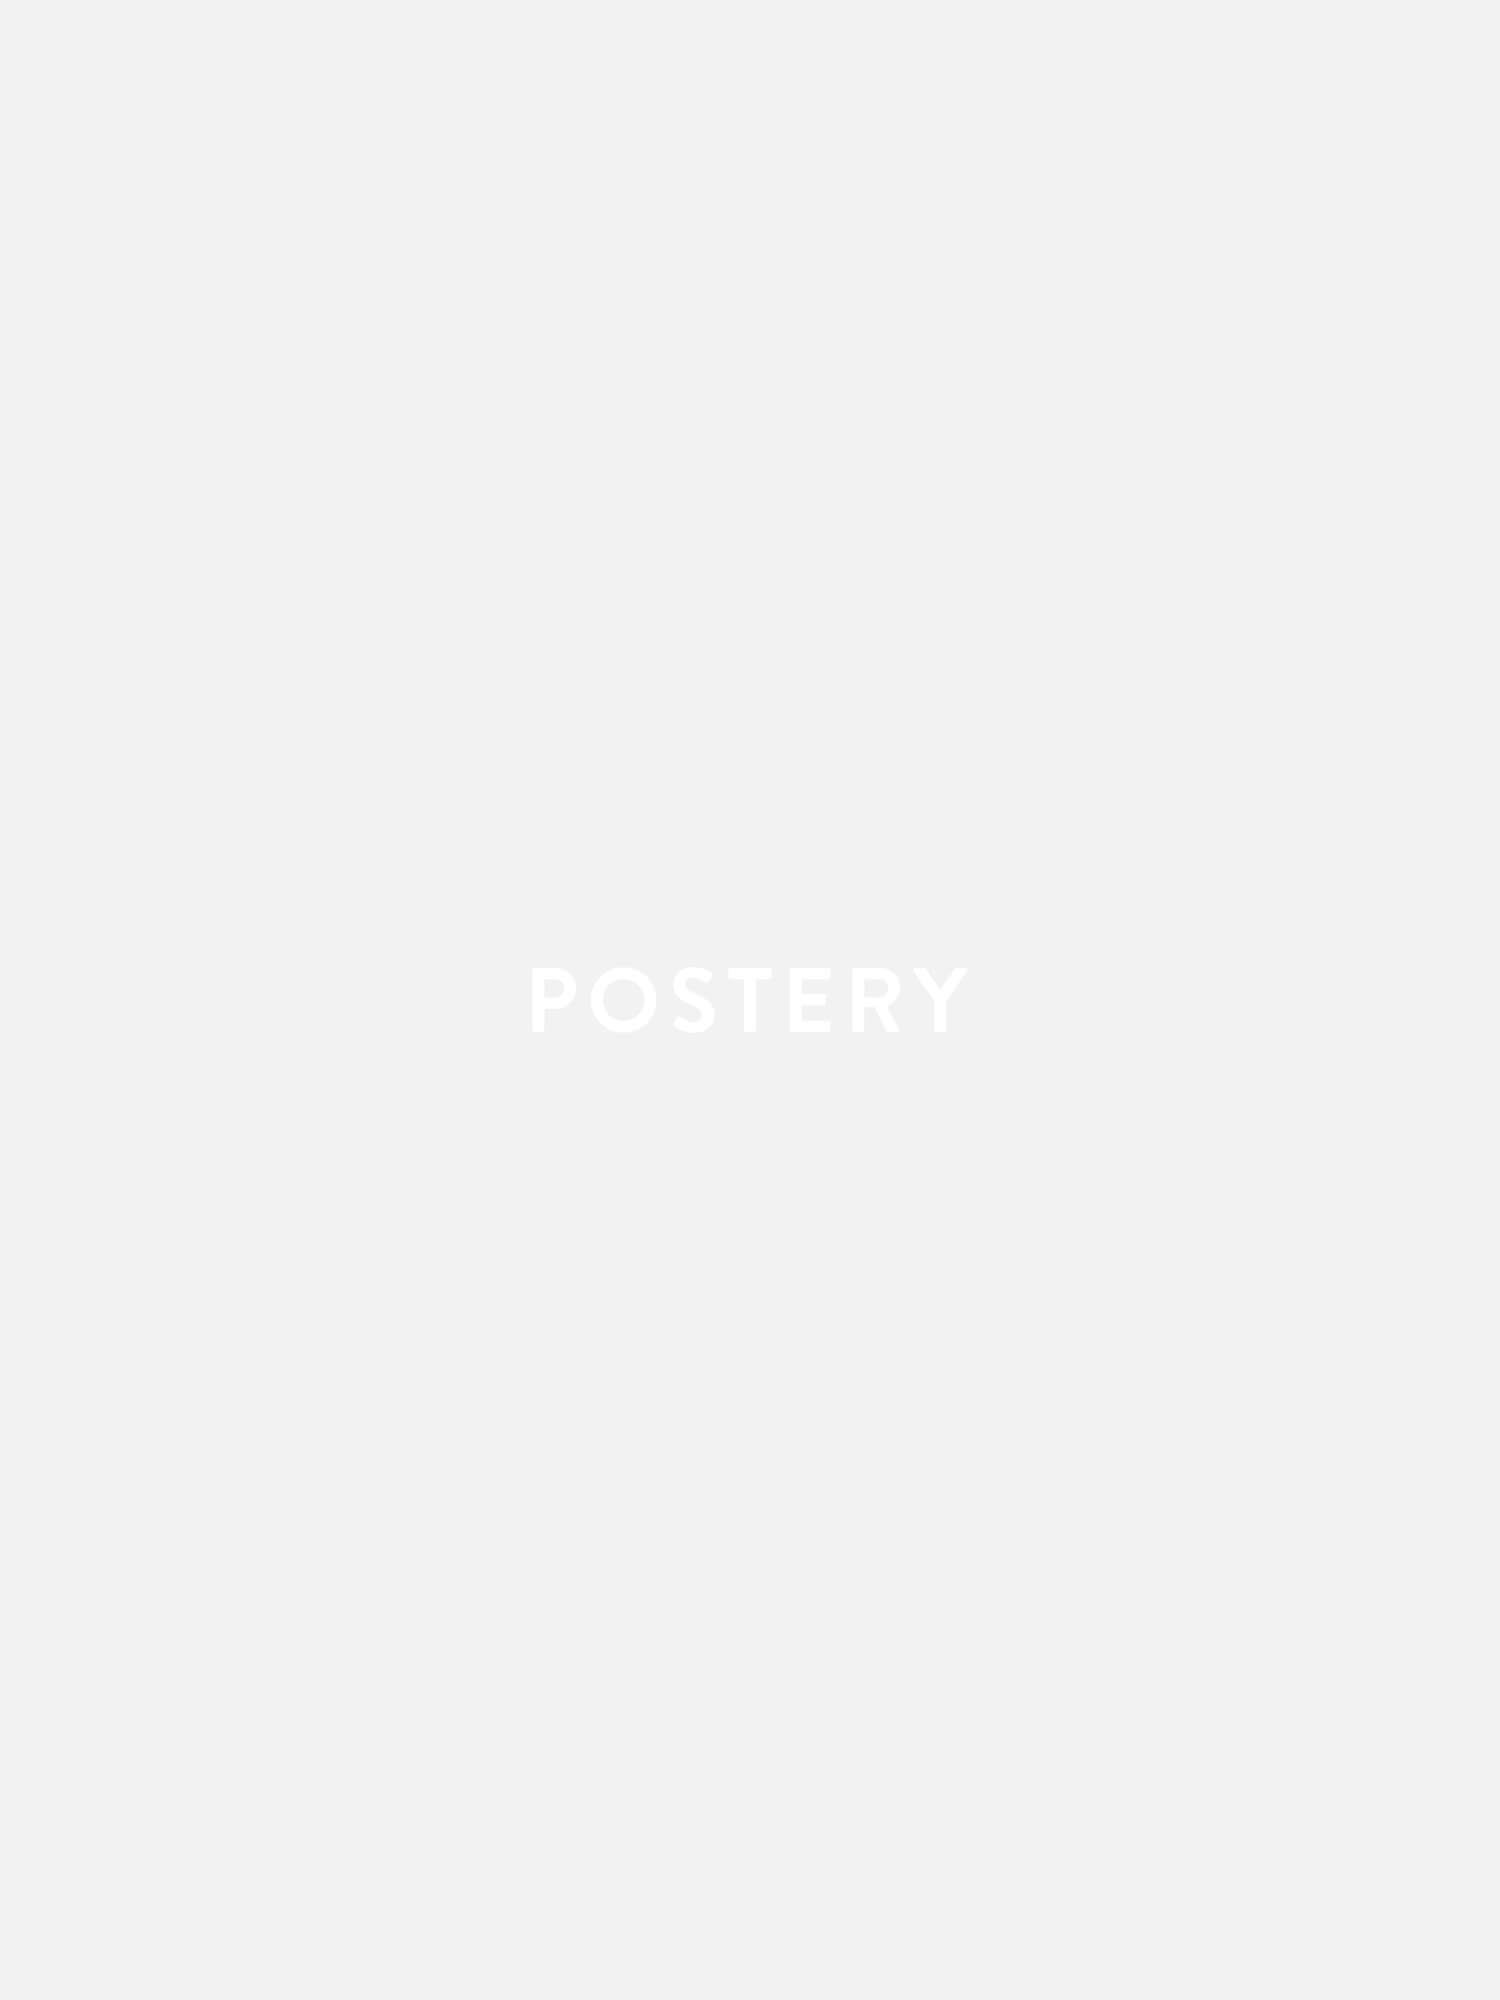 View of Venice Poster